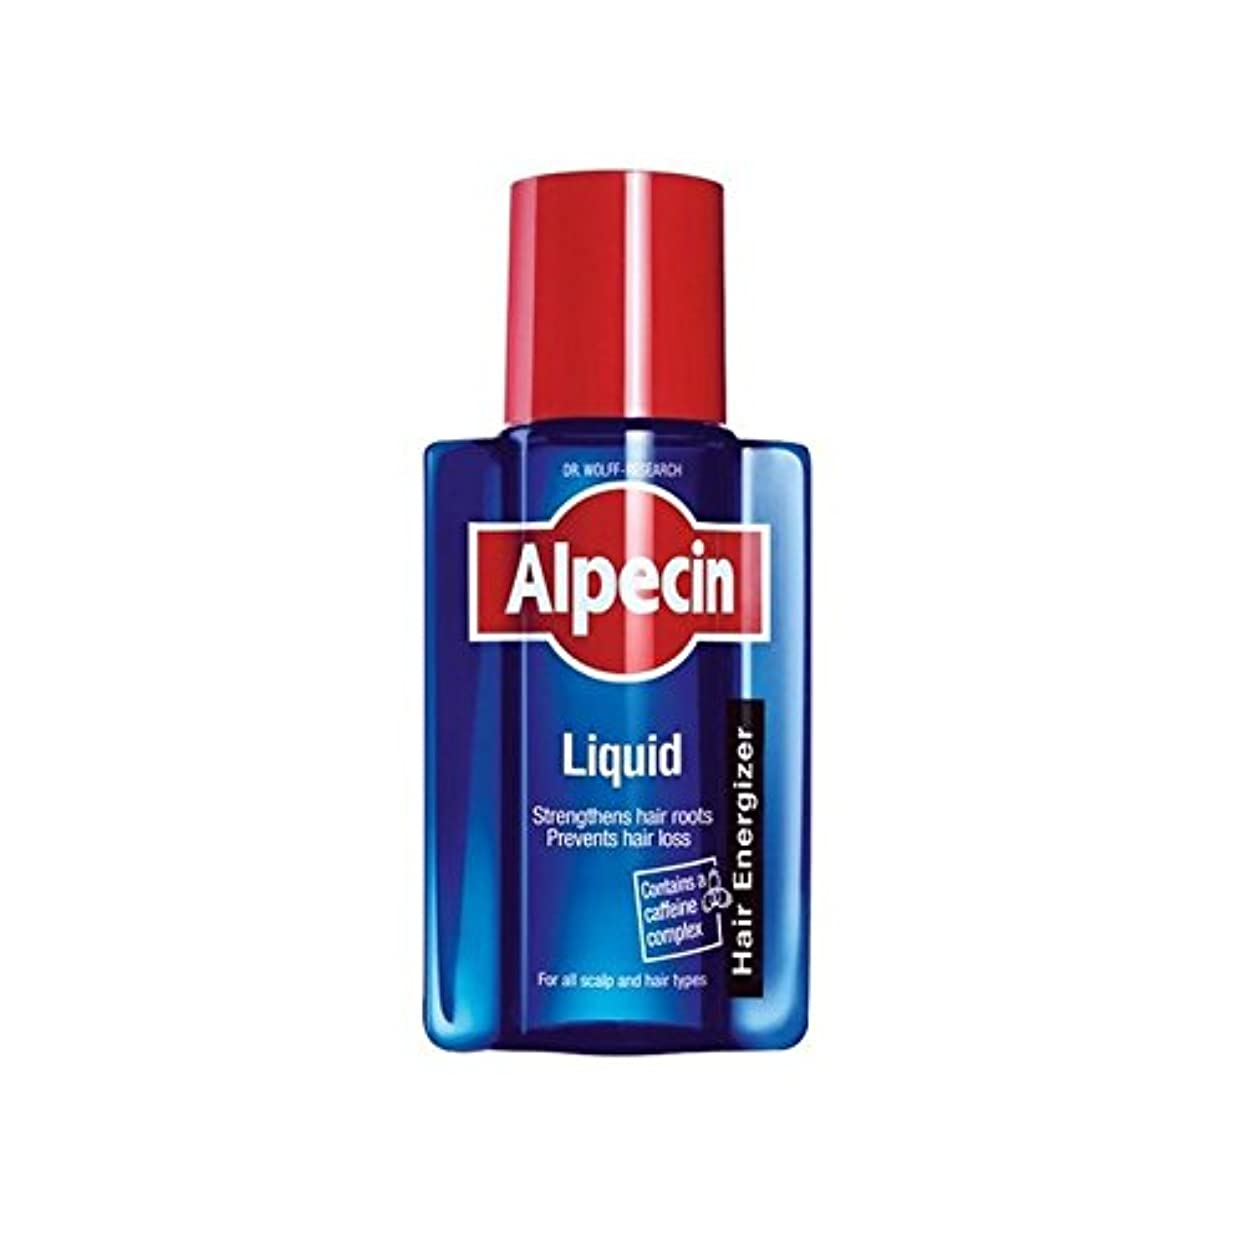 Alpecin Liquid (200ml) (Pack of 6) - 液体(200)中 x6 [並行輸入品]